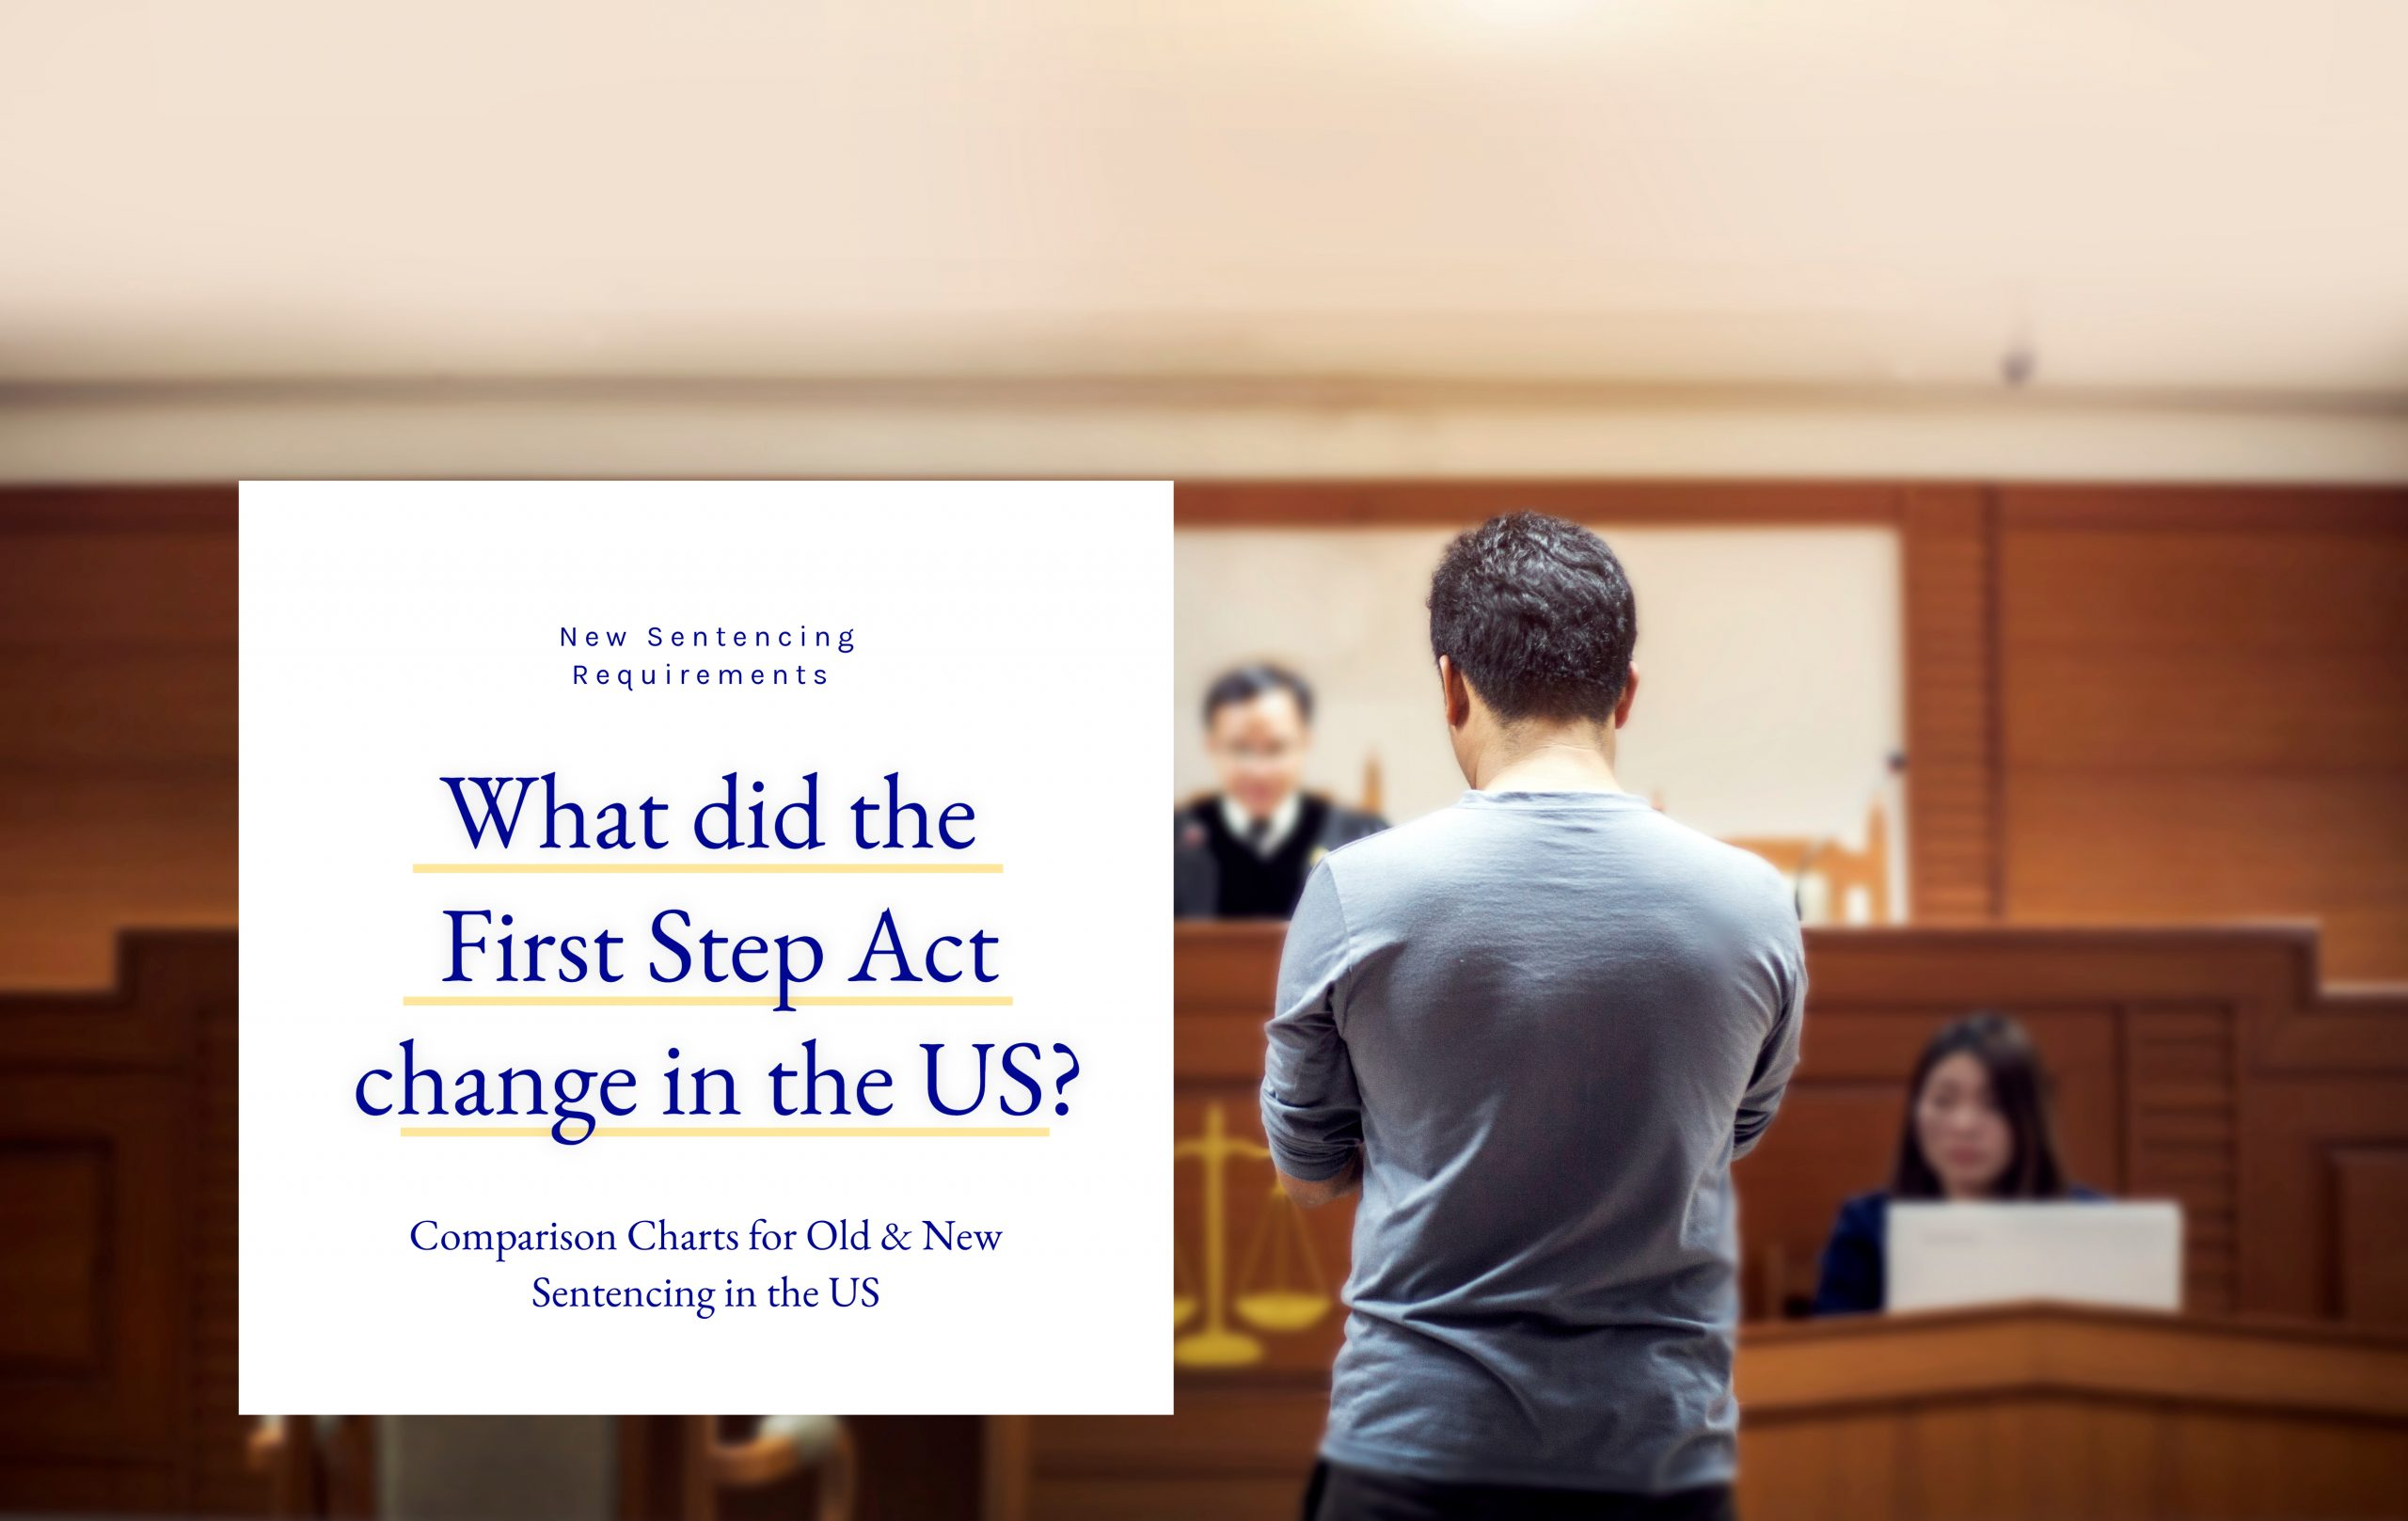 Comparison Charts for the First Step Act